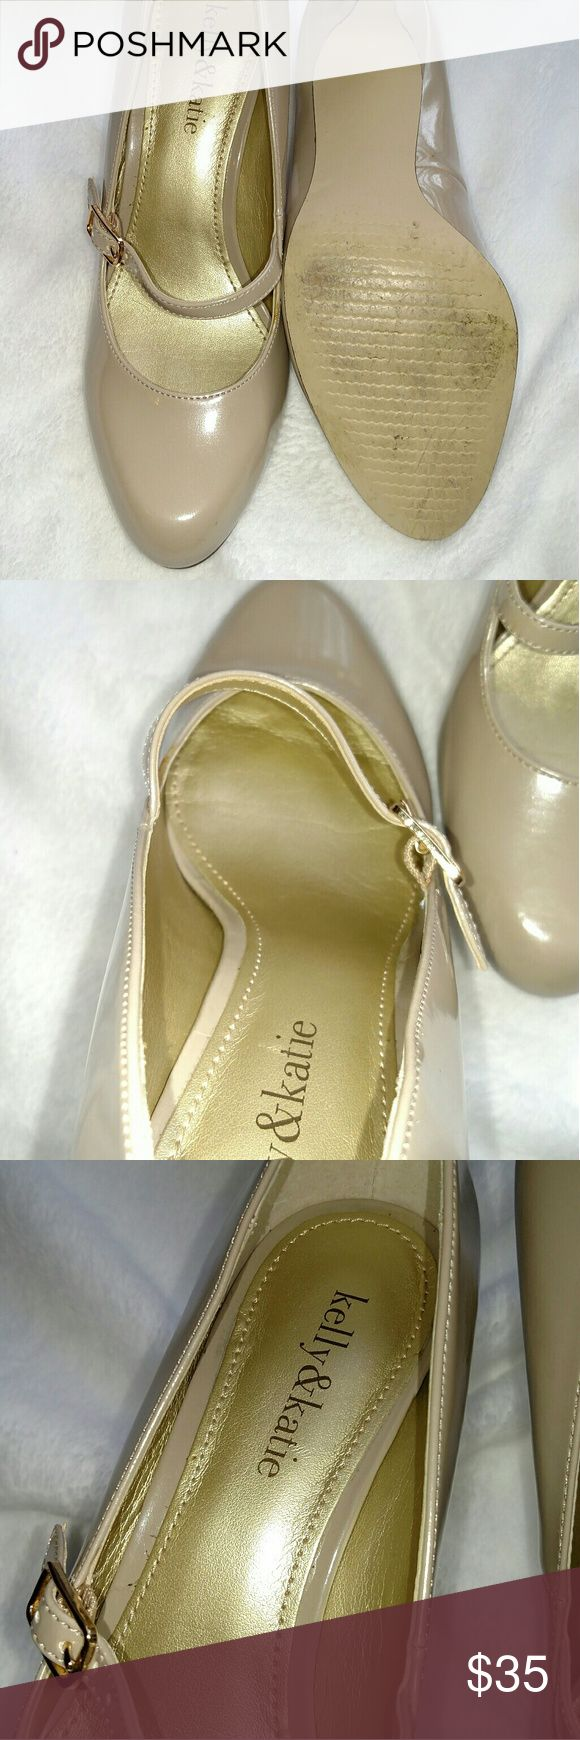 Kelly & Katie nude patent leather Mary Jane's. Only worn once for my wedding for about 2hrs. There is a tiny scuff in 4th picture next to the flash mark. Kelly & Katie Shoes Heels